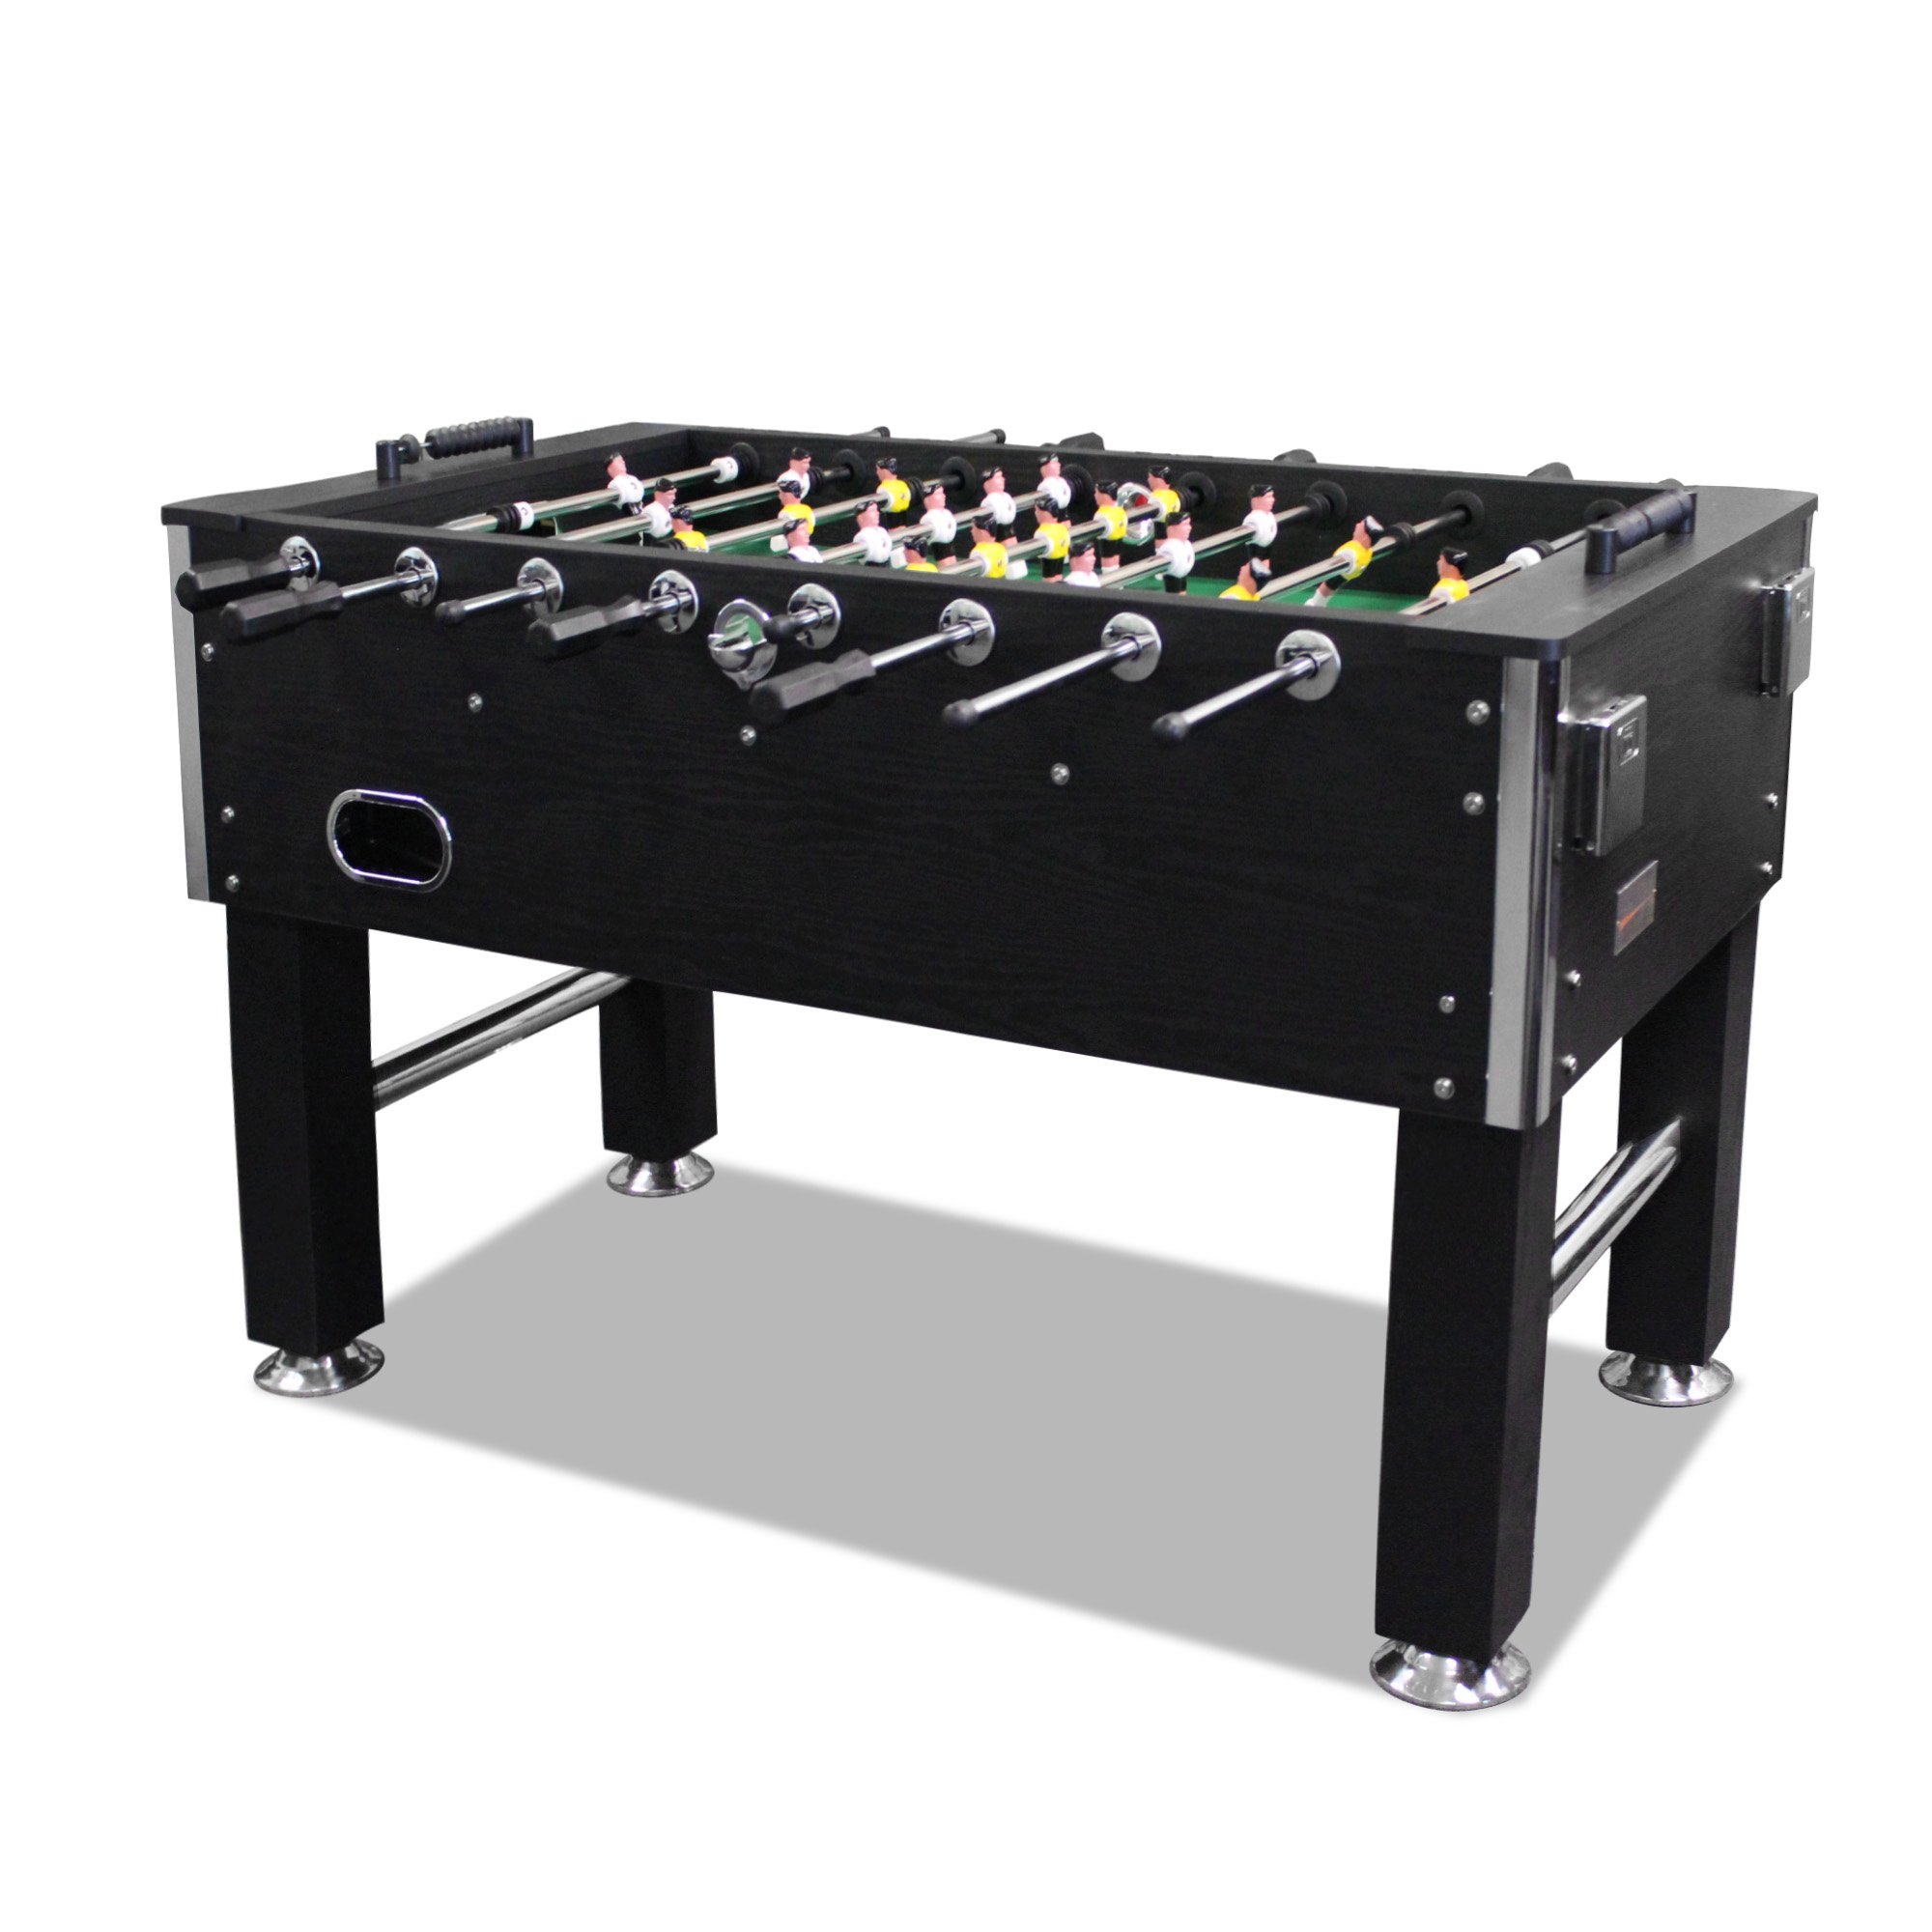 T&R sports 60'' Soccer Foosball Table Heavy Duty for Pub Game Room with Drink Holders, Black by T&R sports